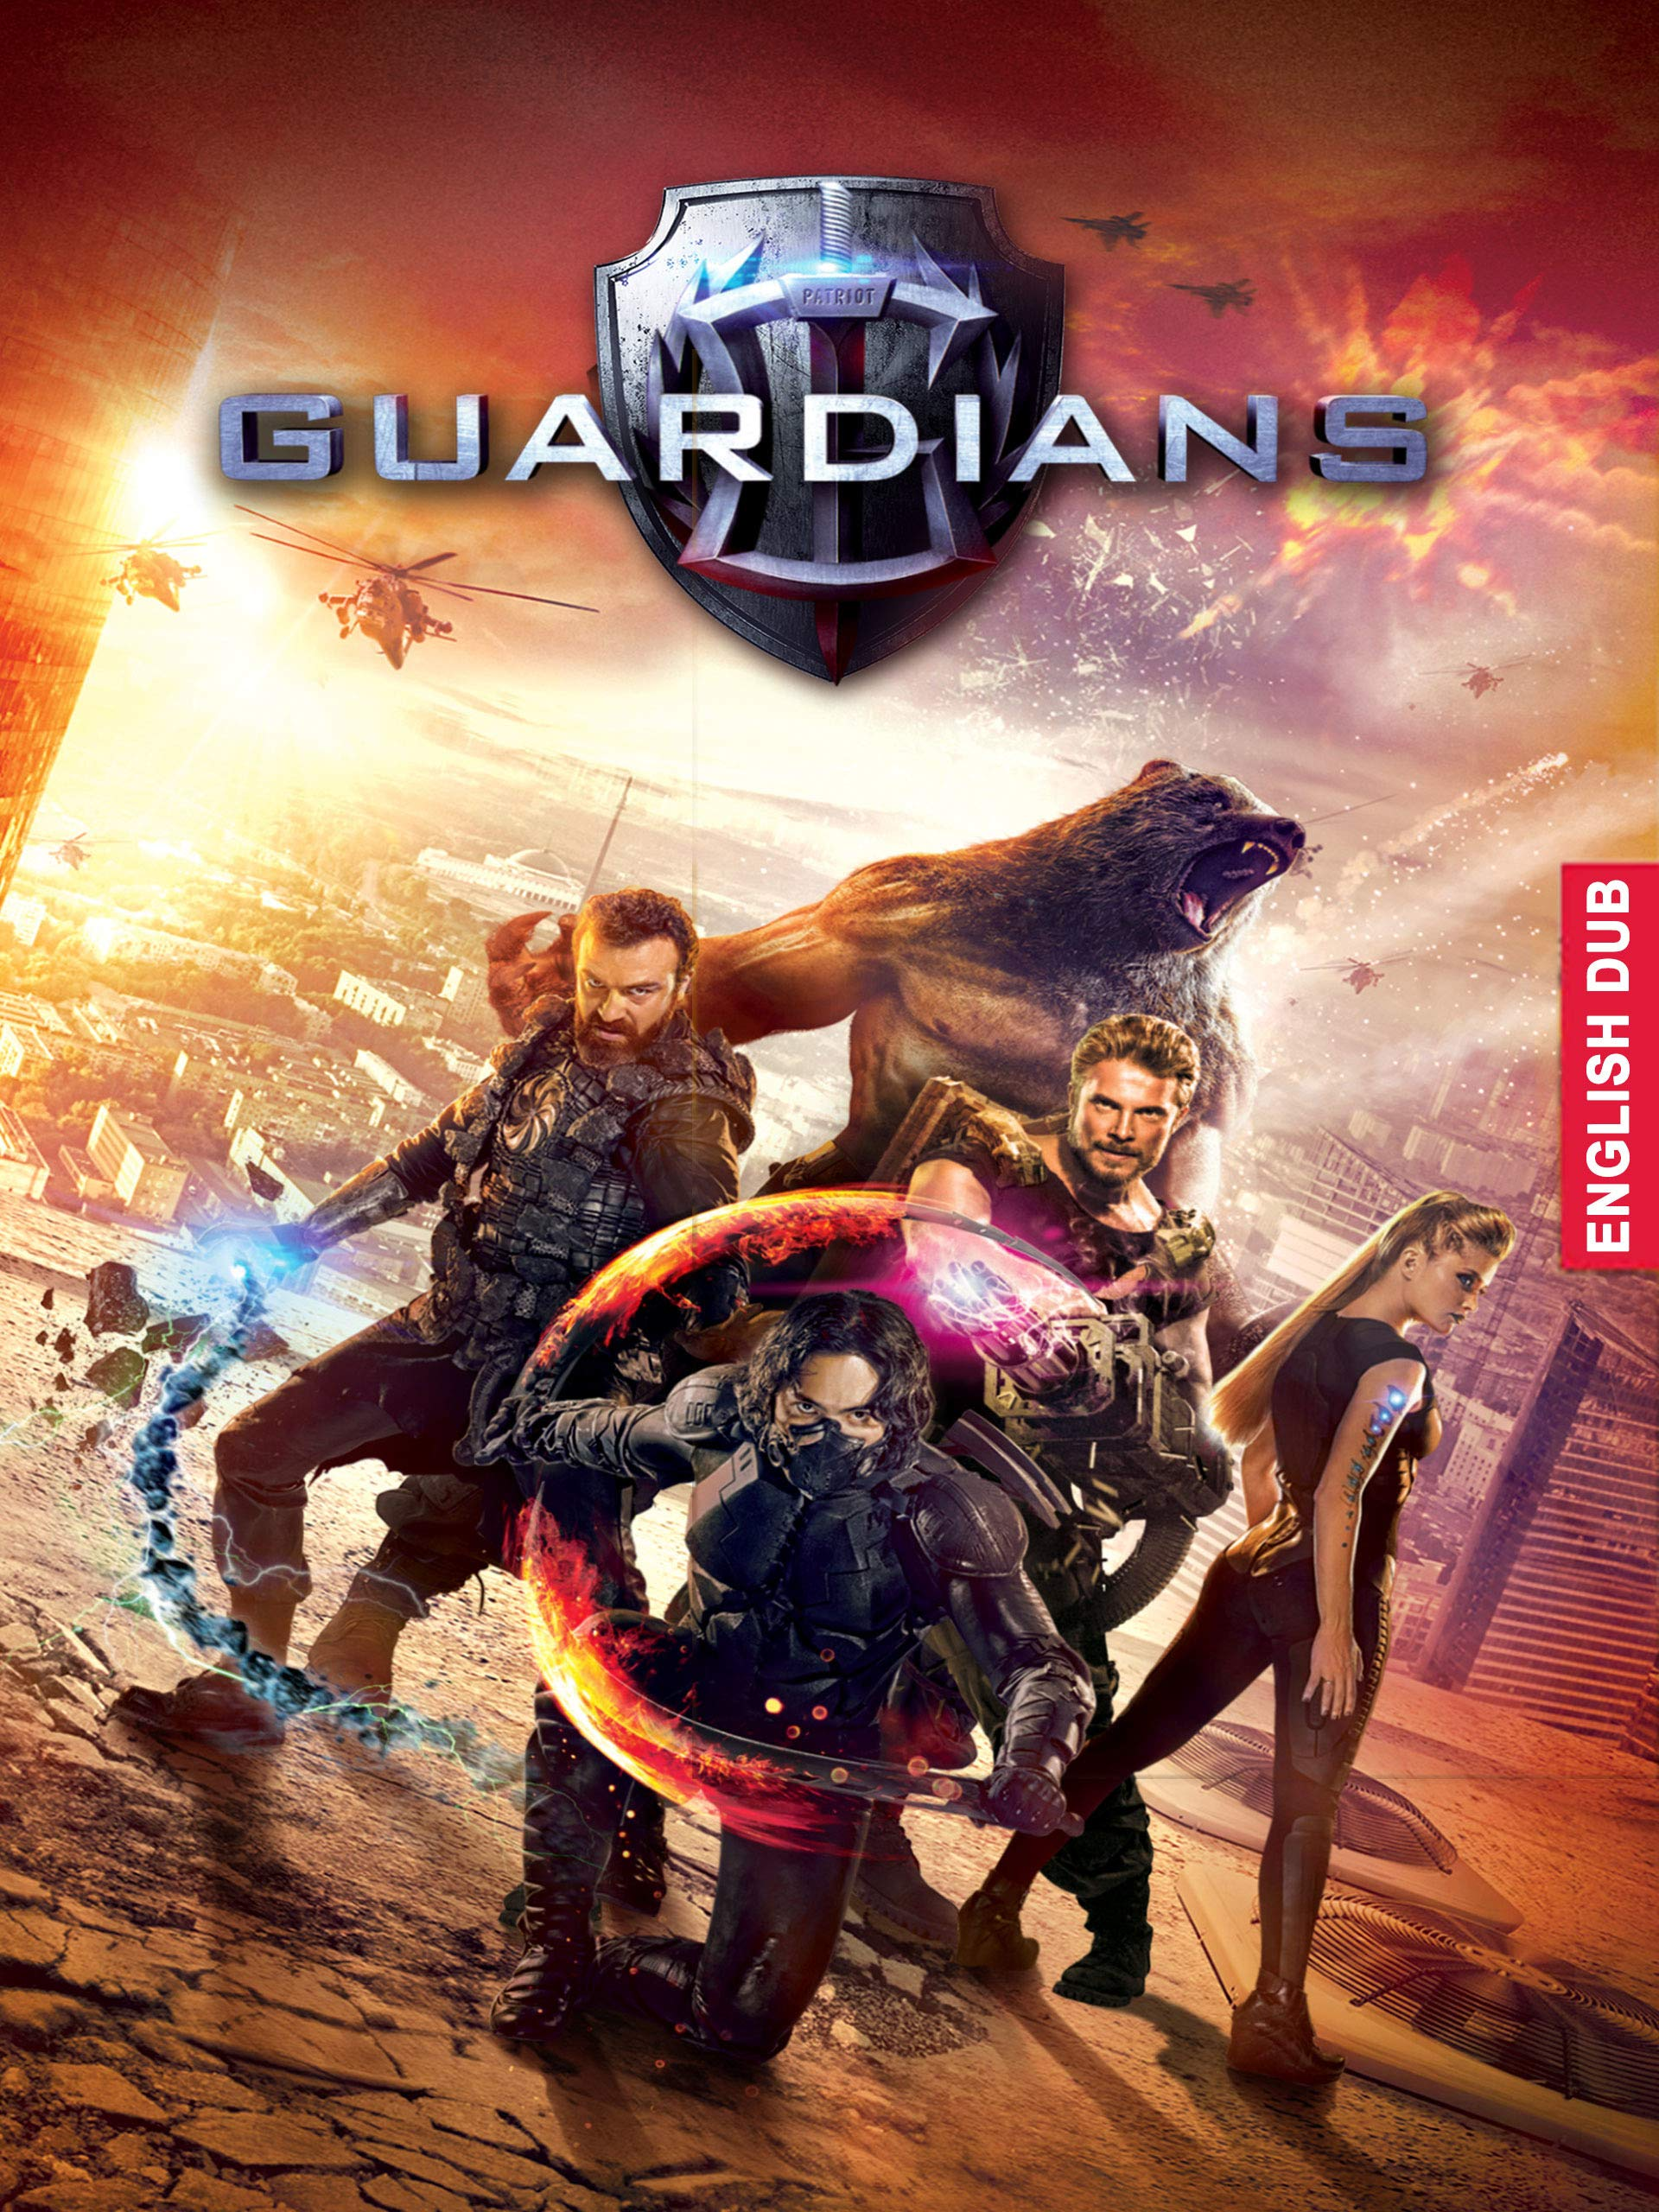 watch guardians online free in english